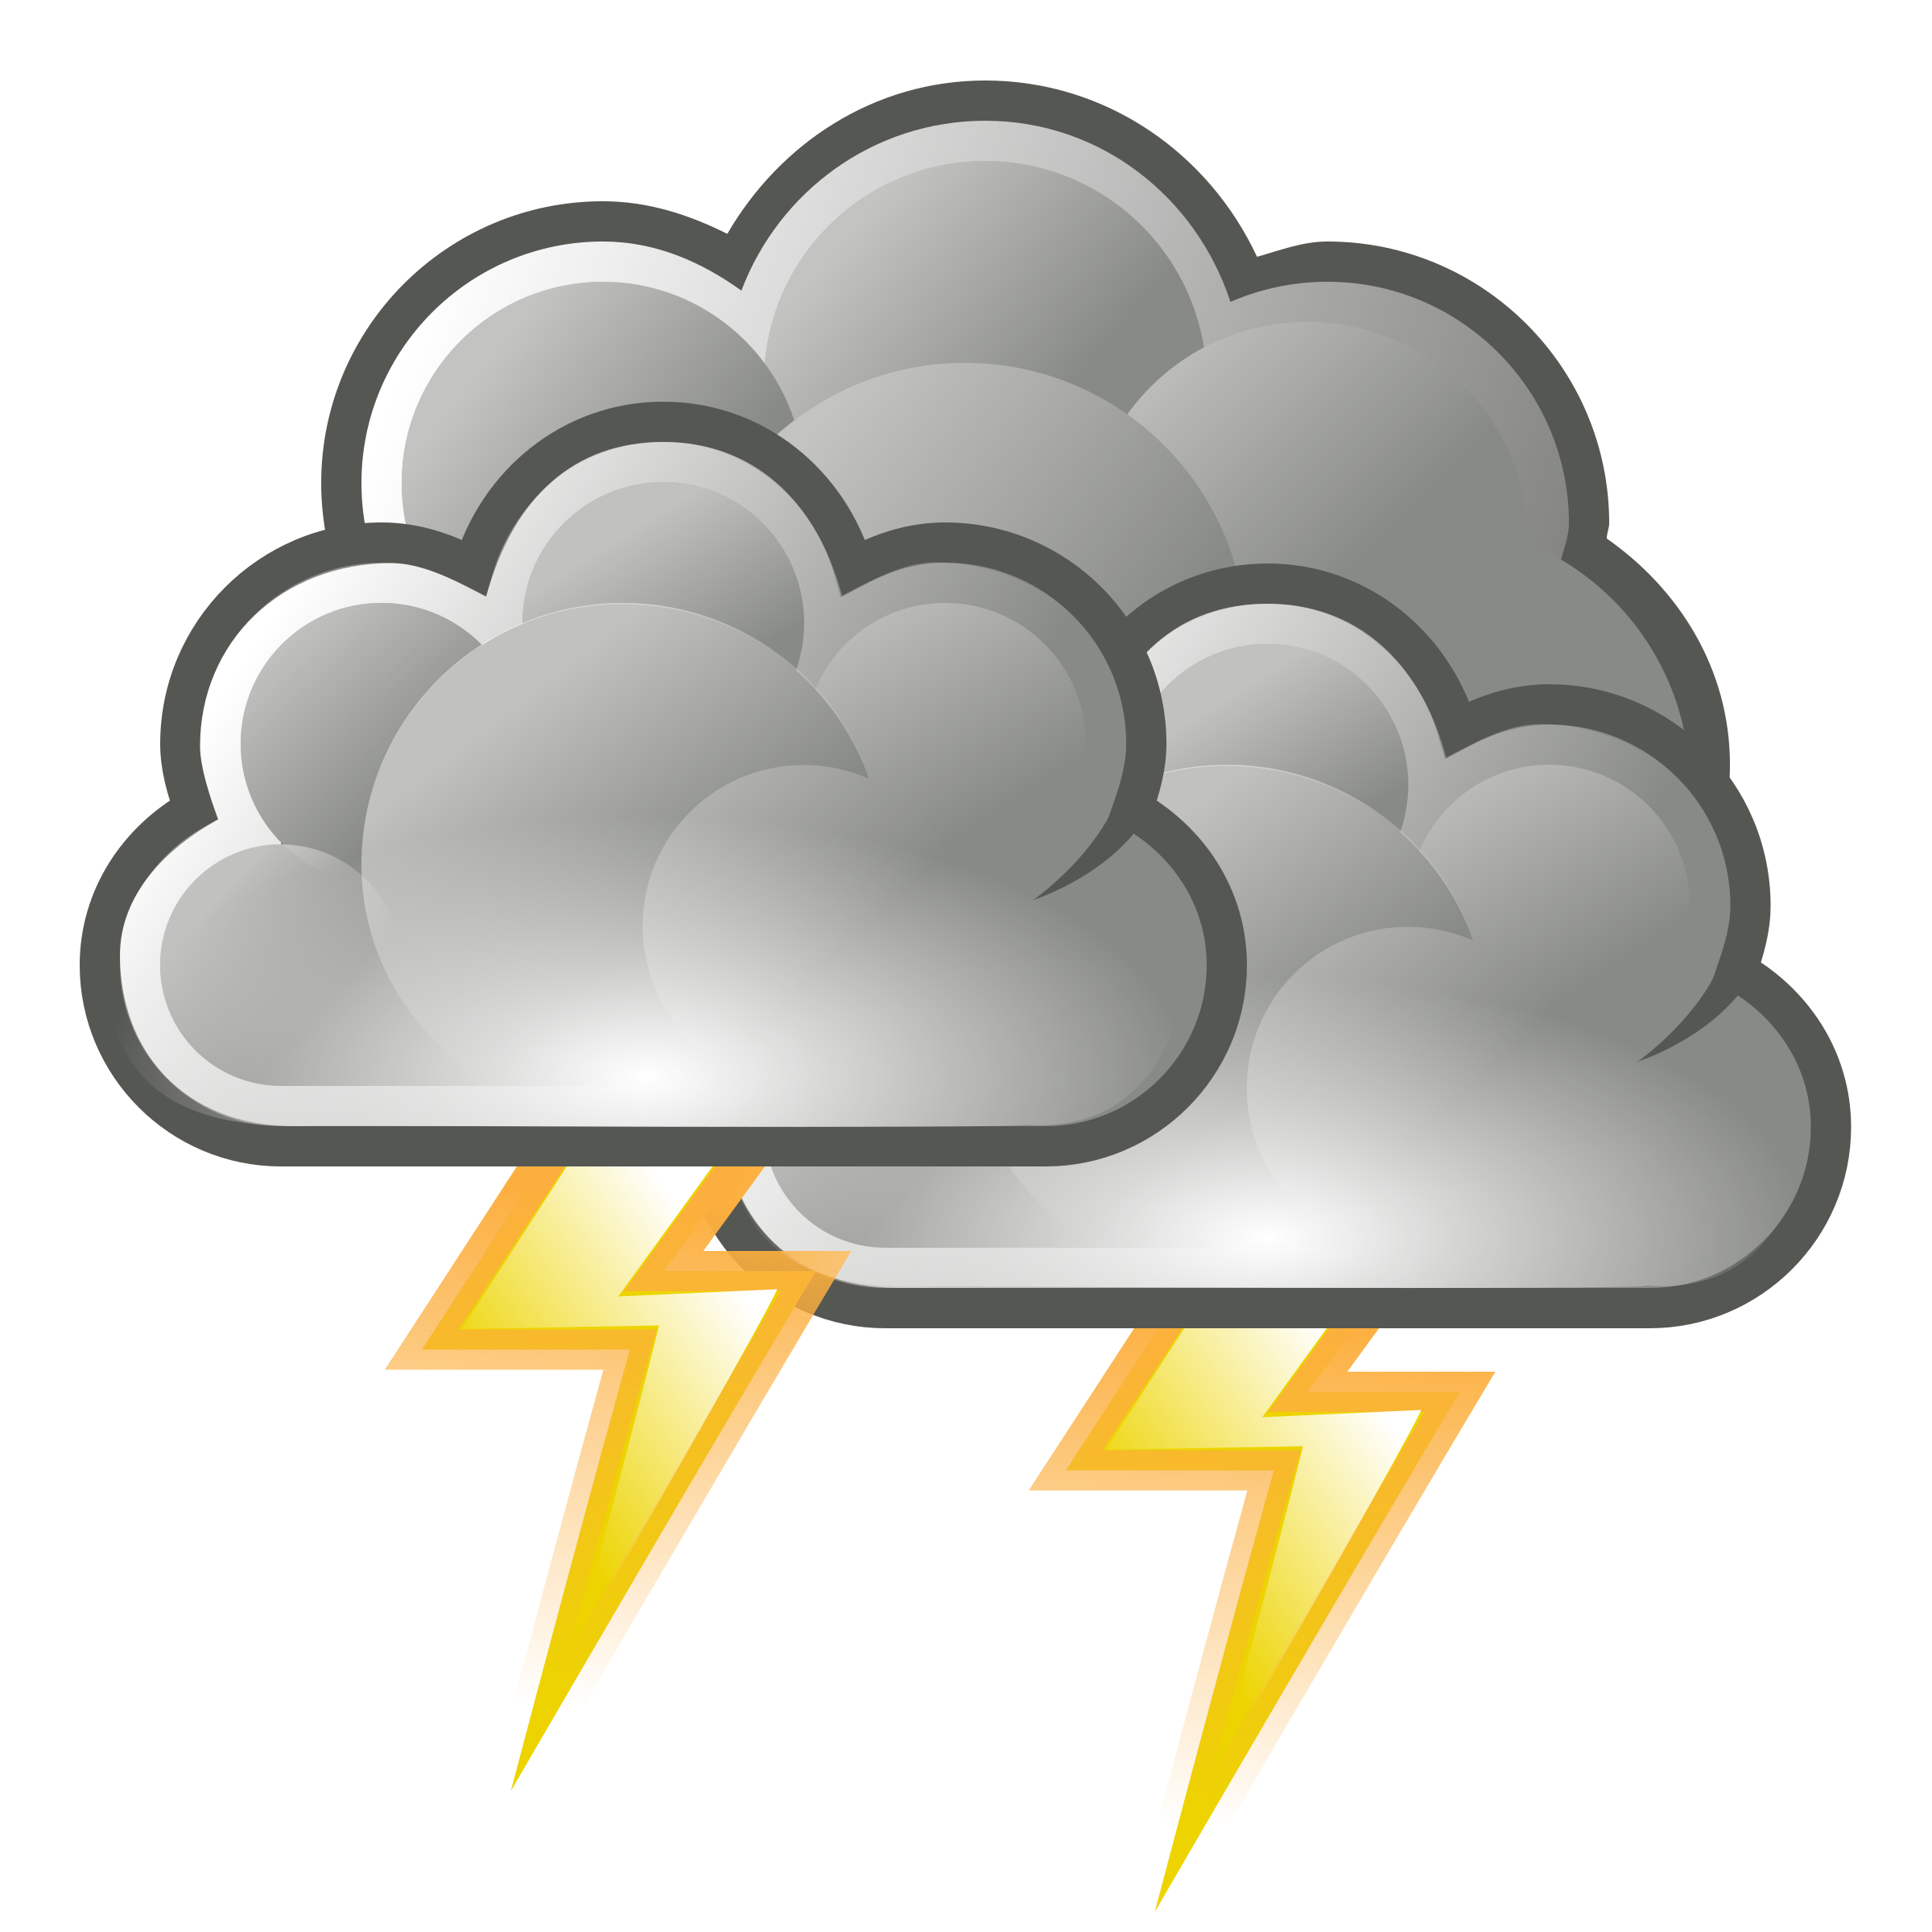 Storm Clipart Severe Weather #3